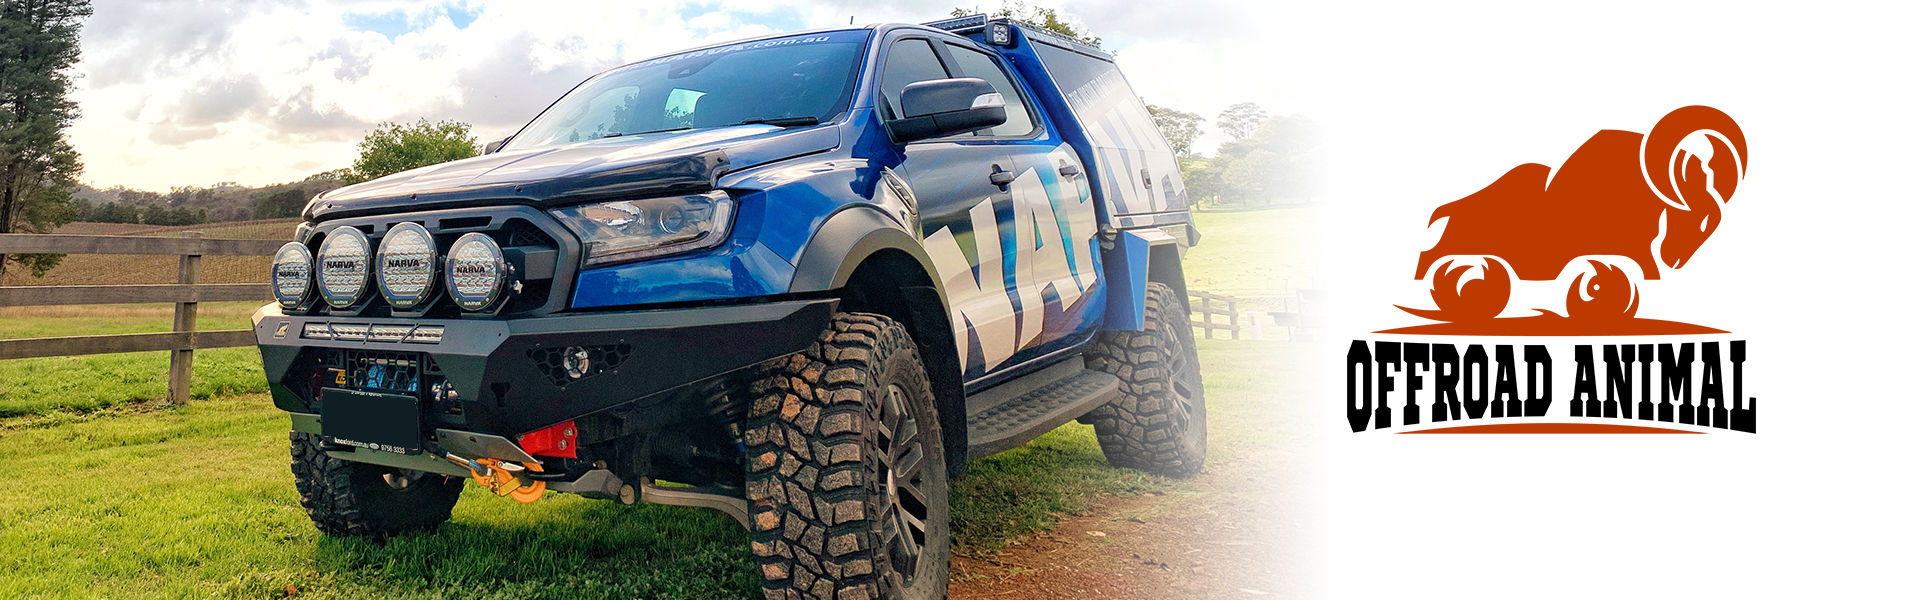 Offroad Animal Brisbane